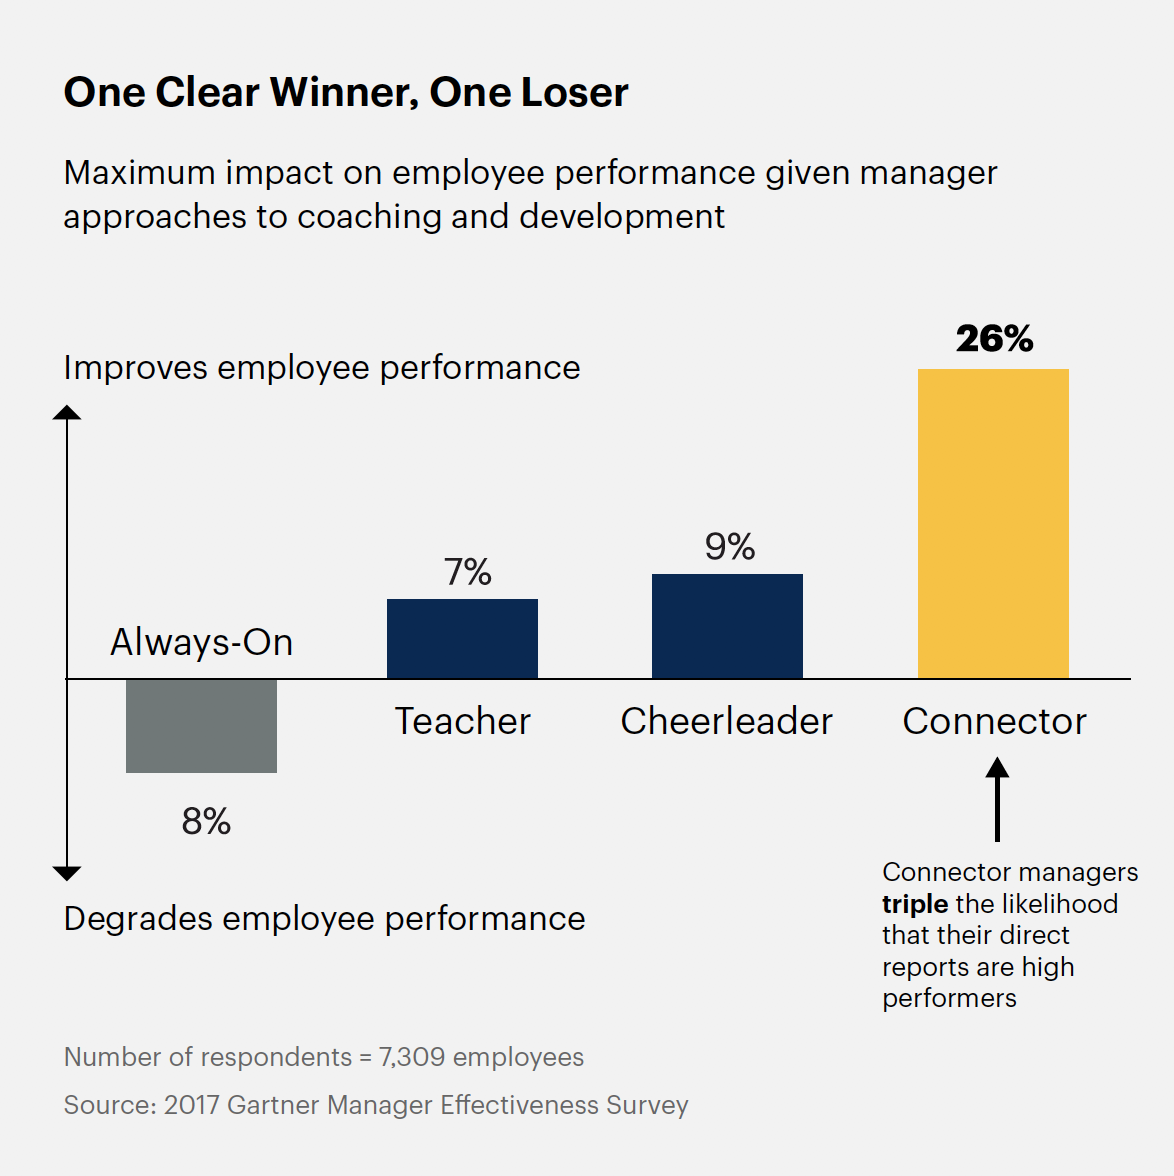 Gartner shows the Connector Manager clearly has the most impact on employee performance, while always-on managers degrade performance